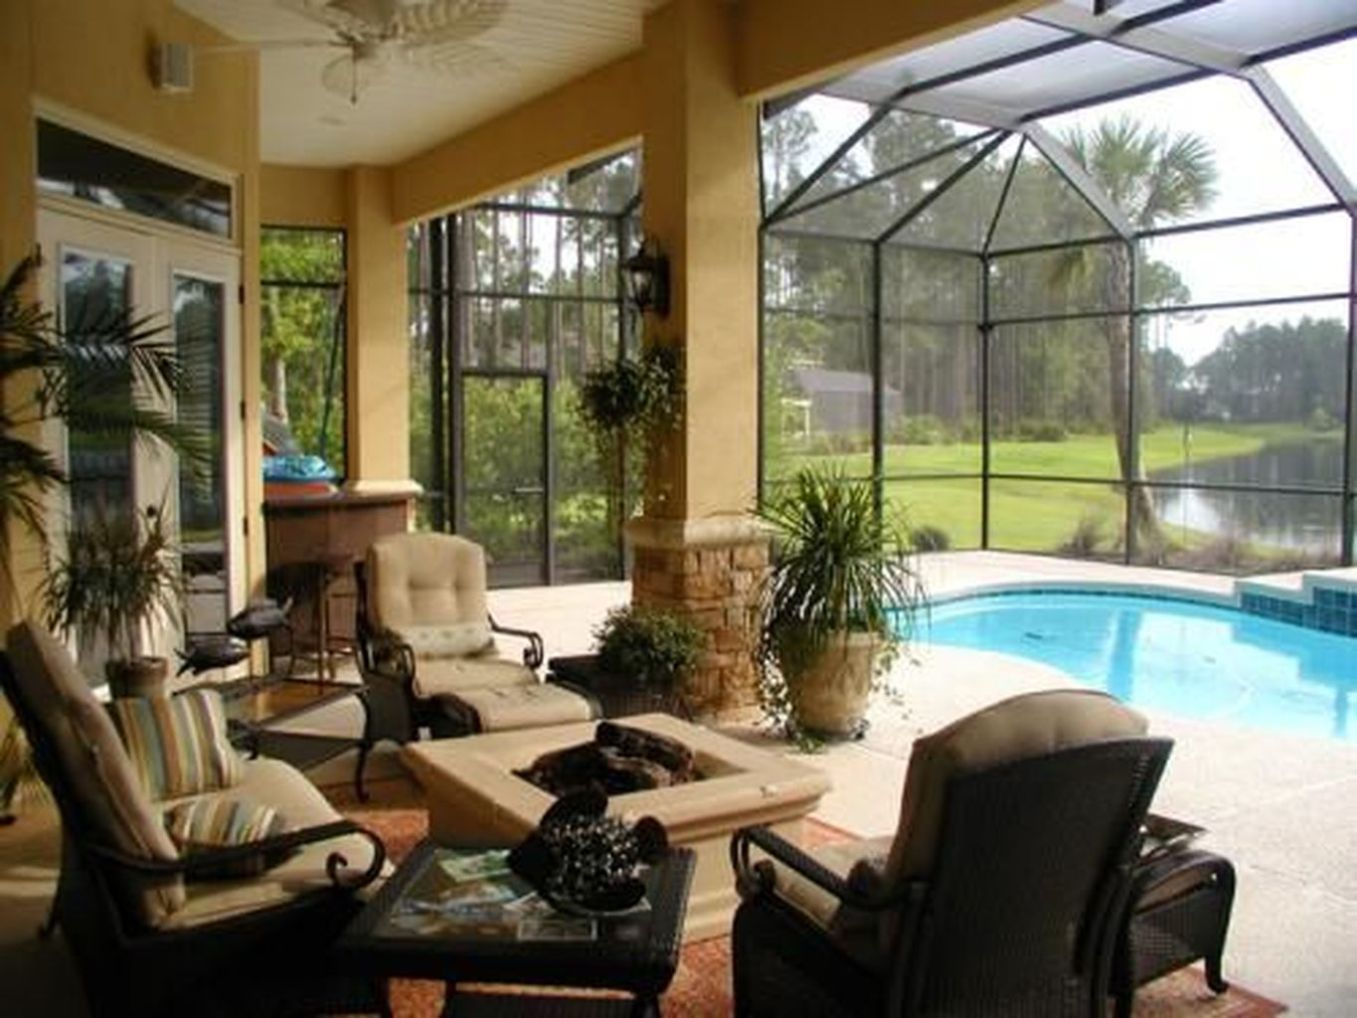 25 Screened In And Covered Pool Design Ideas 25 Furniture Inspiration Lanai Decorating